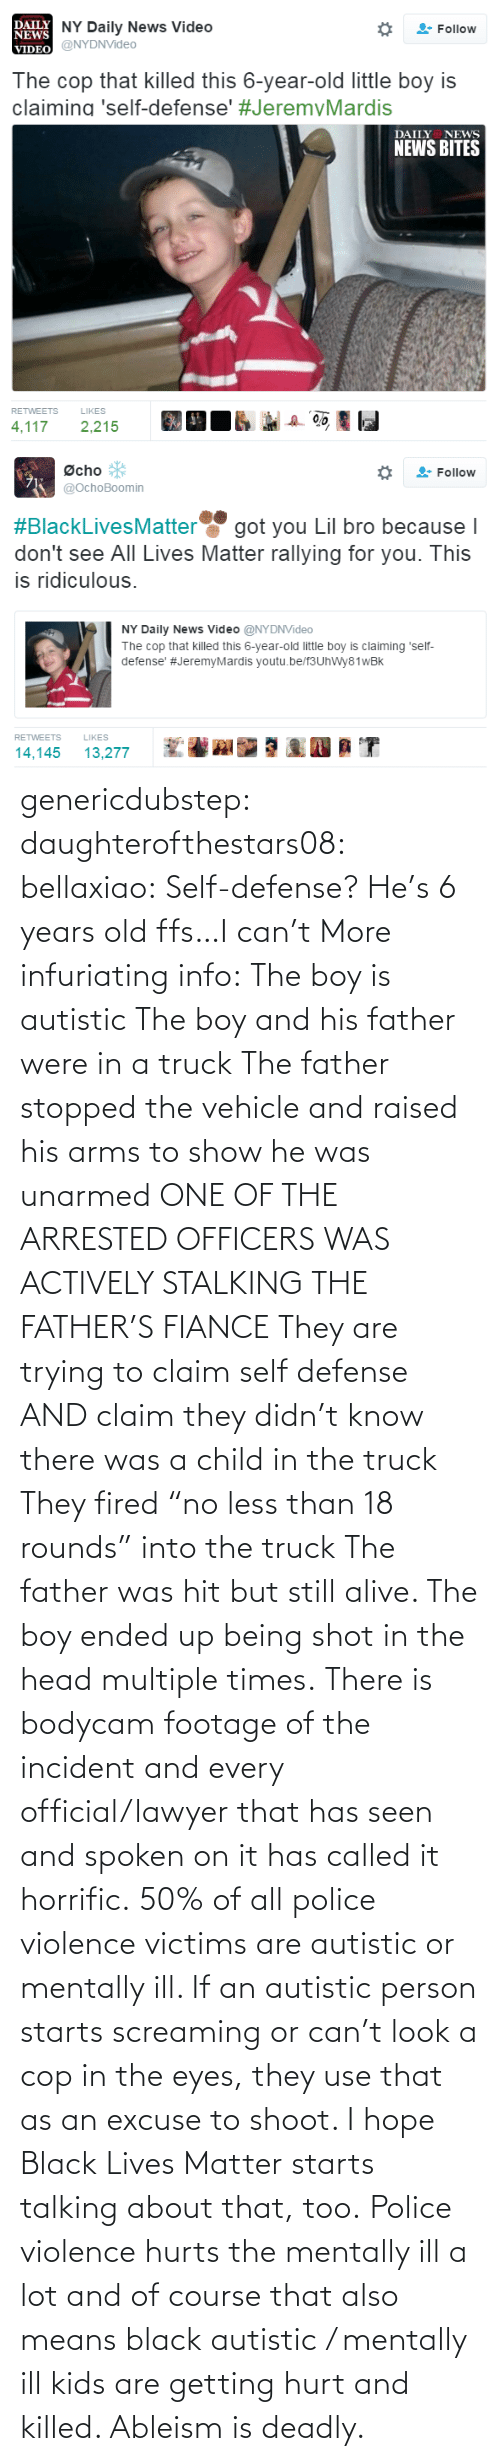 "Raised: genericdubstep: daughterofthestars08:  bellaxiao:  Self-defense? He's 6 years old ffs…I can't  More infuriating info: The boy is autistic The boy and his father were in a truck The father stopped the vehicle and raised his arms to show he was unarmed ONE OF THE ARRESTED OFFICERS WAS ACTIVELY STALKING THE FATHER'S FIANCE They are trying to claim self defense AND claim they didn't know there was a child in the truck They fired ""no less than 18 rounds"" into the truck The father was hit but still alive. The boy ended up being shot in the head multiple times. There is bodycam footage of the incident and every official/lawyer that has seen and spoken on it has called it horrific.  50% of all police violence victims are autistic or mentally ill. If an autistic person starts screaming or can't look a cop in the eyes, they use that as an excuse to shoot. I hope Black Lives Matter starts talking about that, too. Police violence hurts the mentally ill a lot and of course that also means black autistic / mentally ill kids are getting hurt and killed. Ableism is deadly."